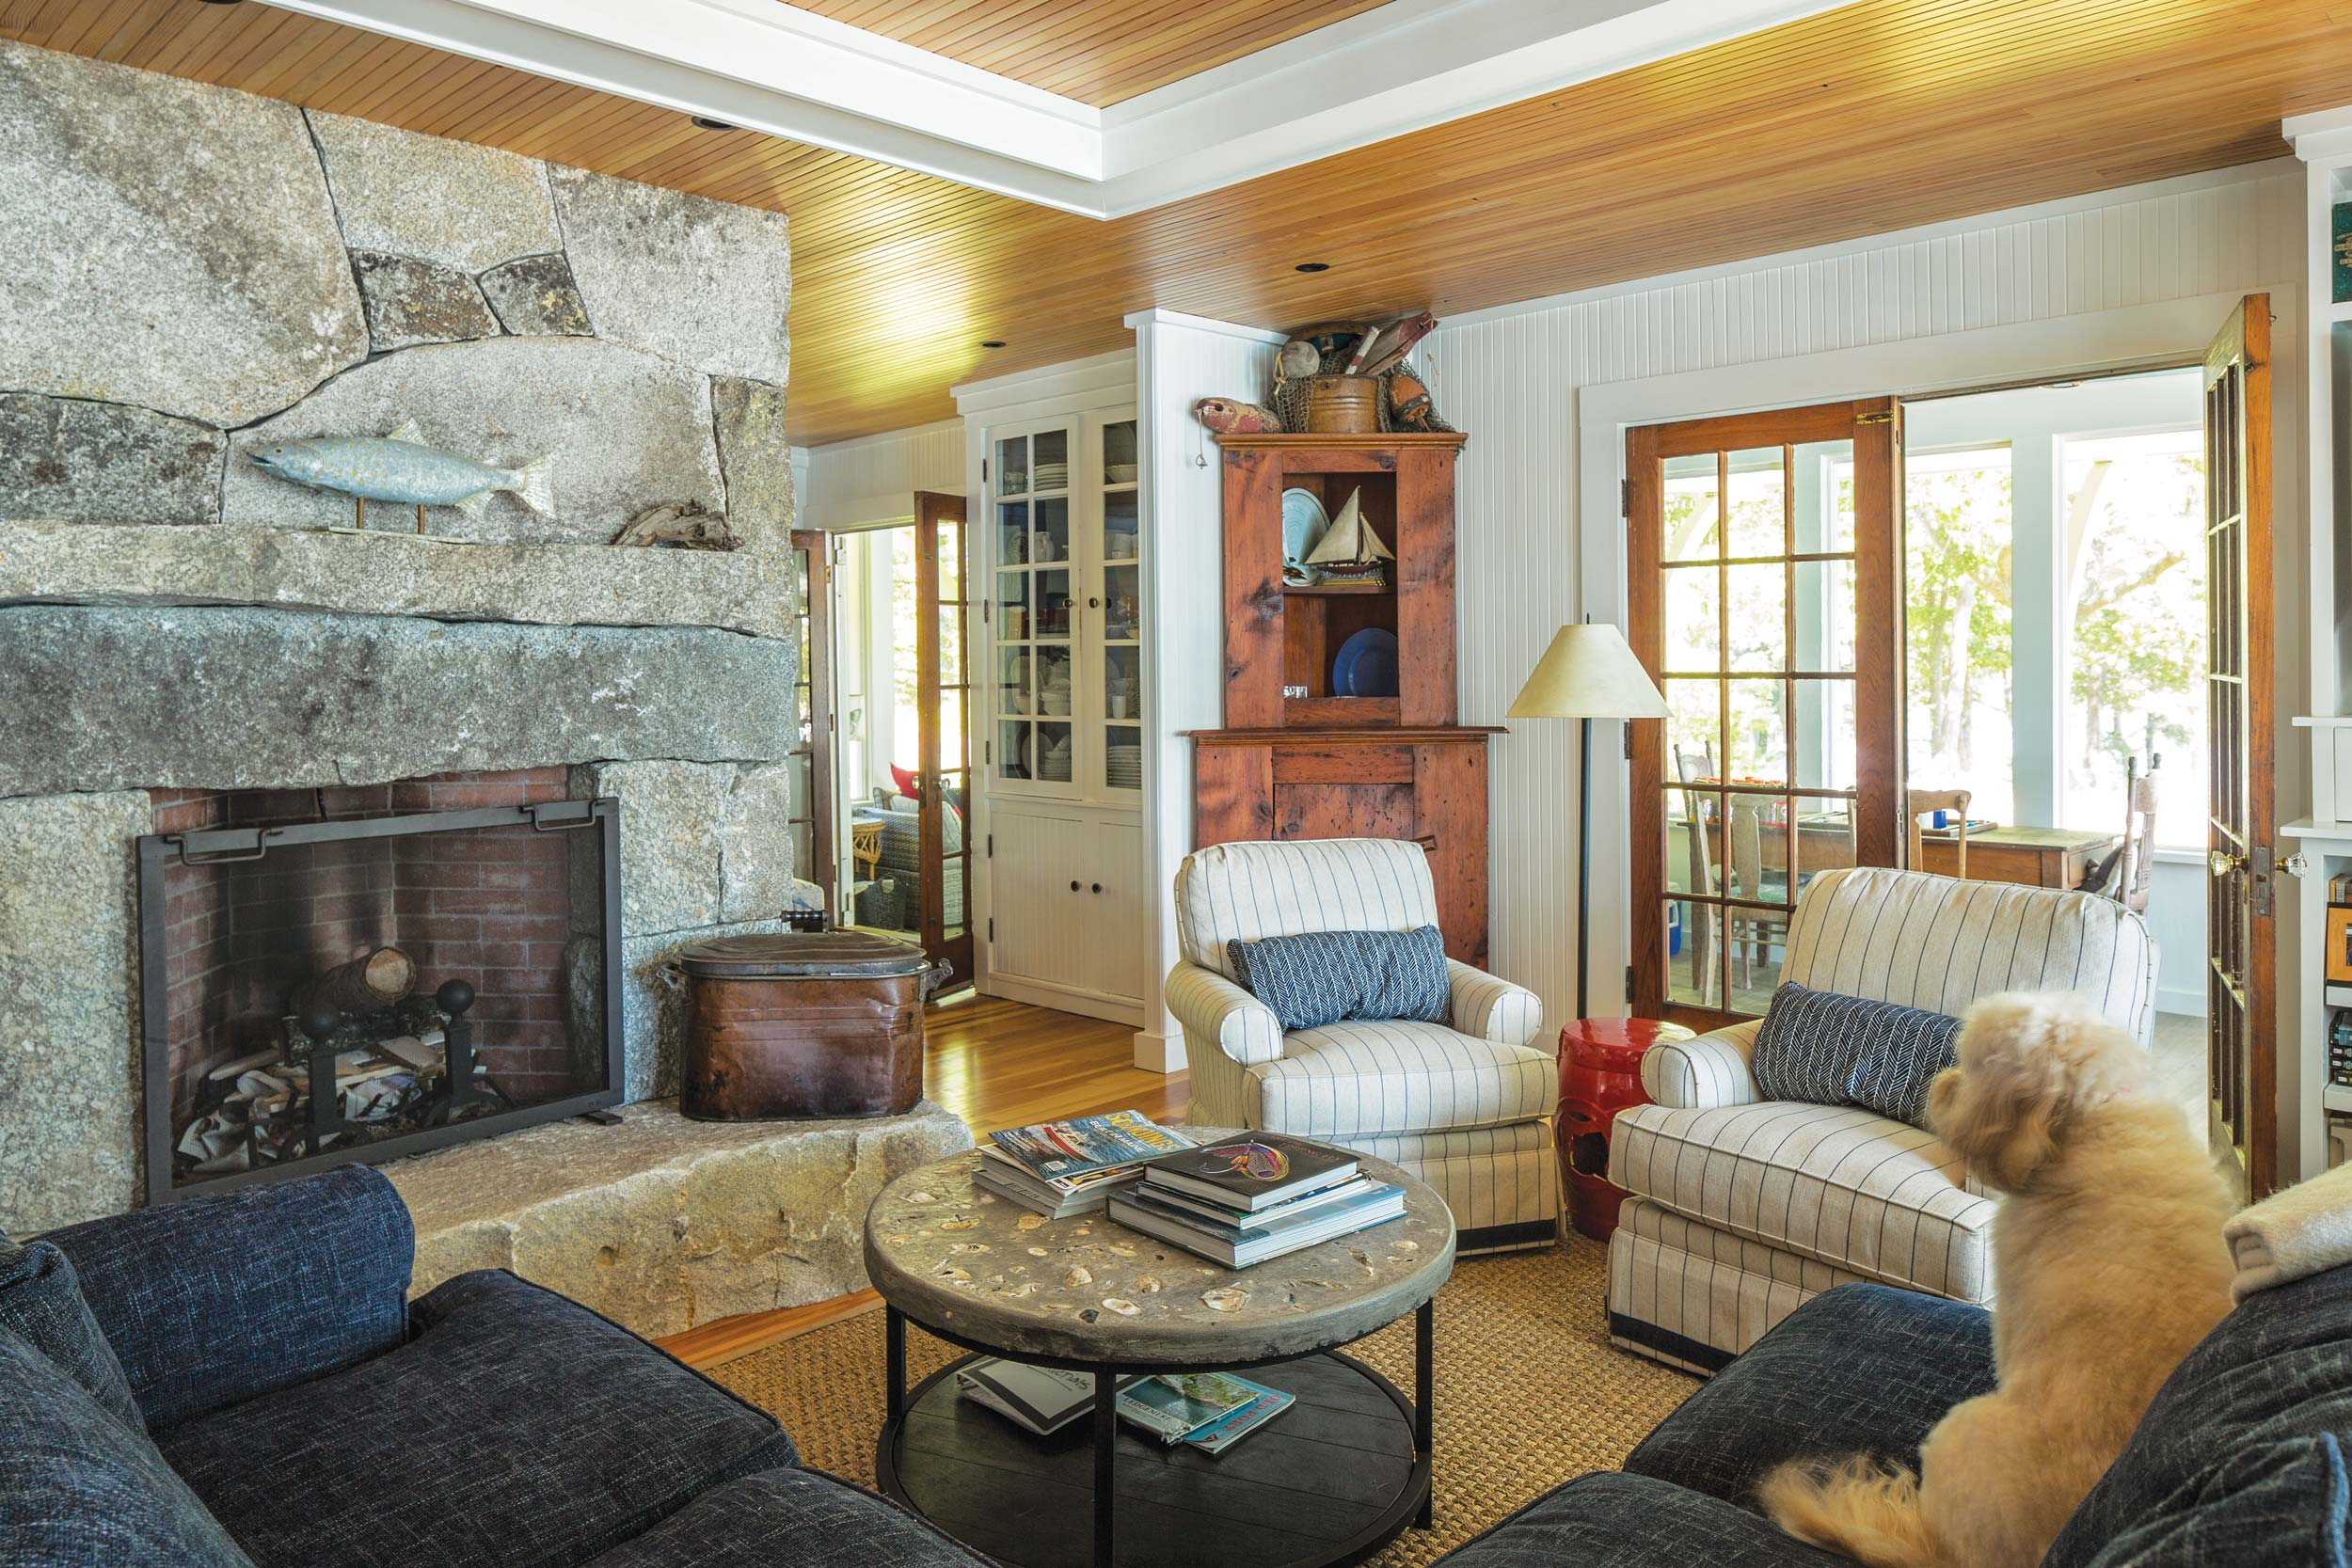 The massive living room fireplace is made of local granite and separates the living and dining room. The corner cabinet and Douglas fir ceiling are original. A new, non-structural white beam is intended to define the space.